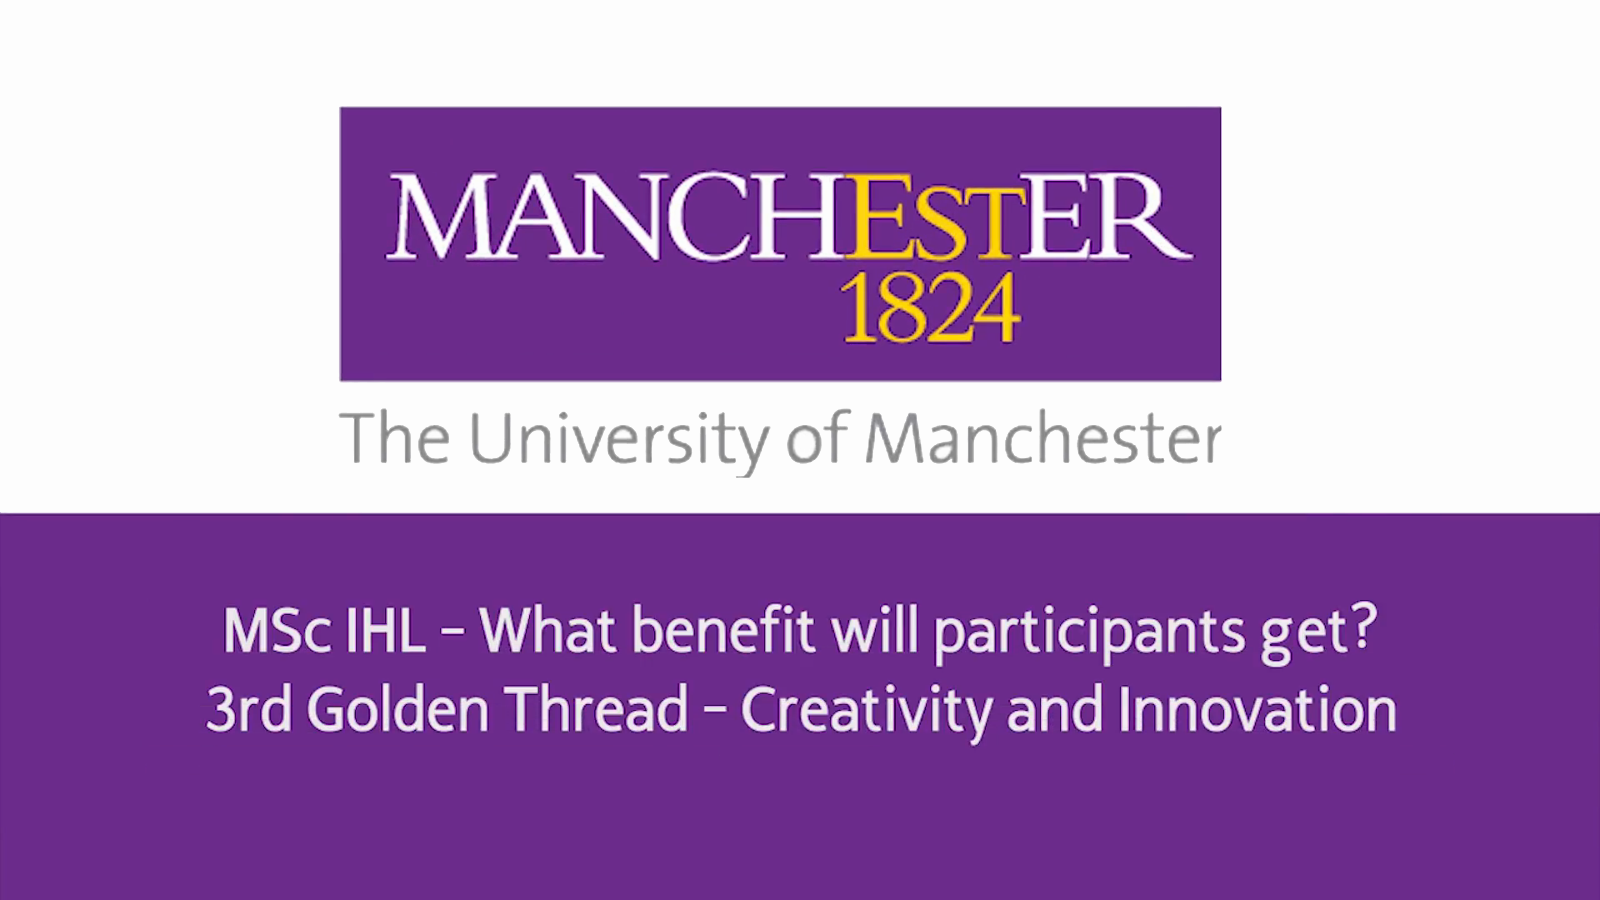 MSc IHL - What Benefits will Participants Get - 3rd Golden Thread - Creativity and Innovation